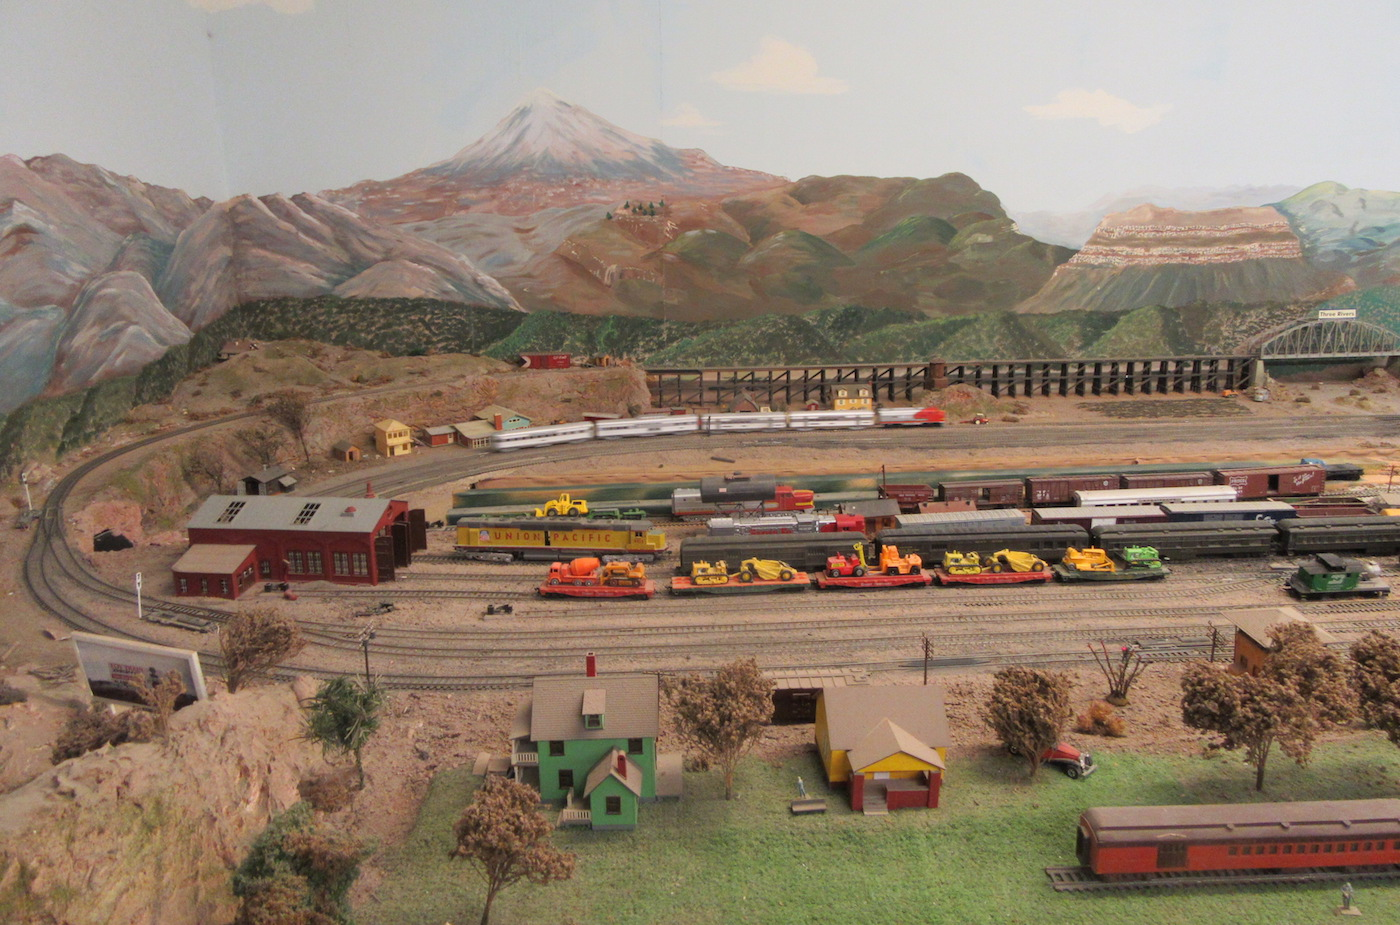 A visit to the Toy Train Depot Alamogordo — A Family Blog